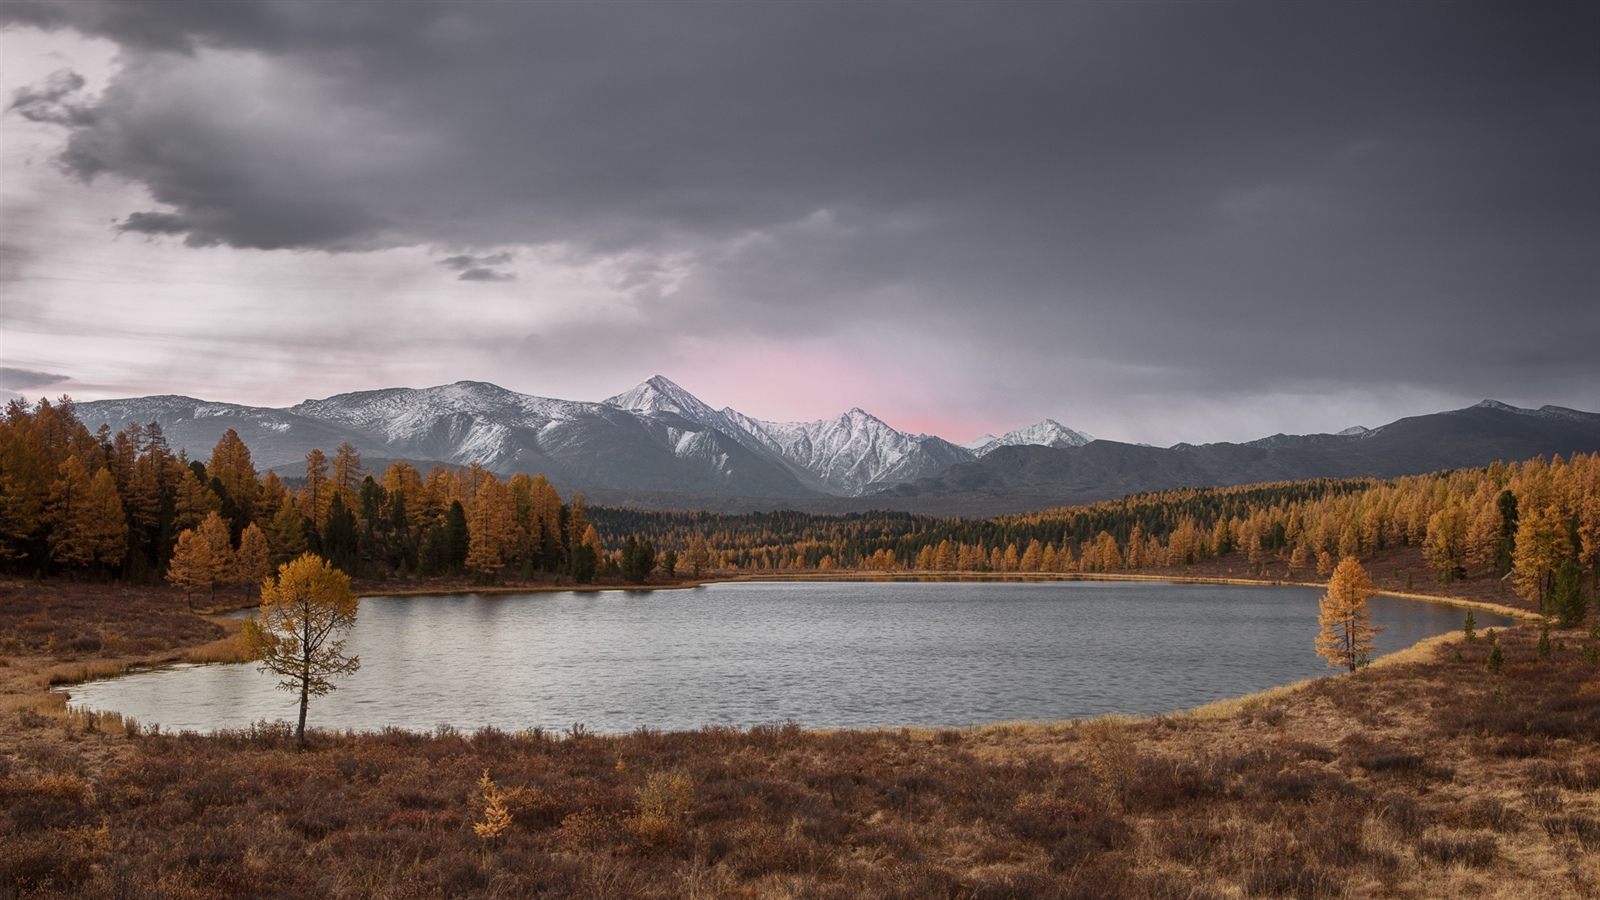 Altay, lake, trees, mountains, autumn 1600x900 wallpaper